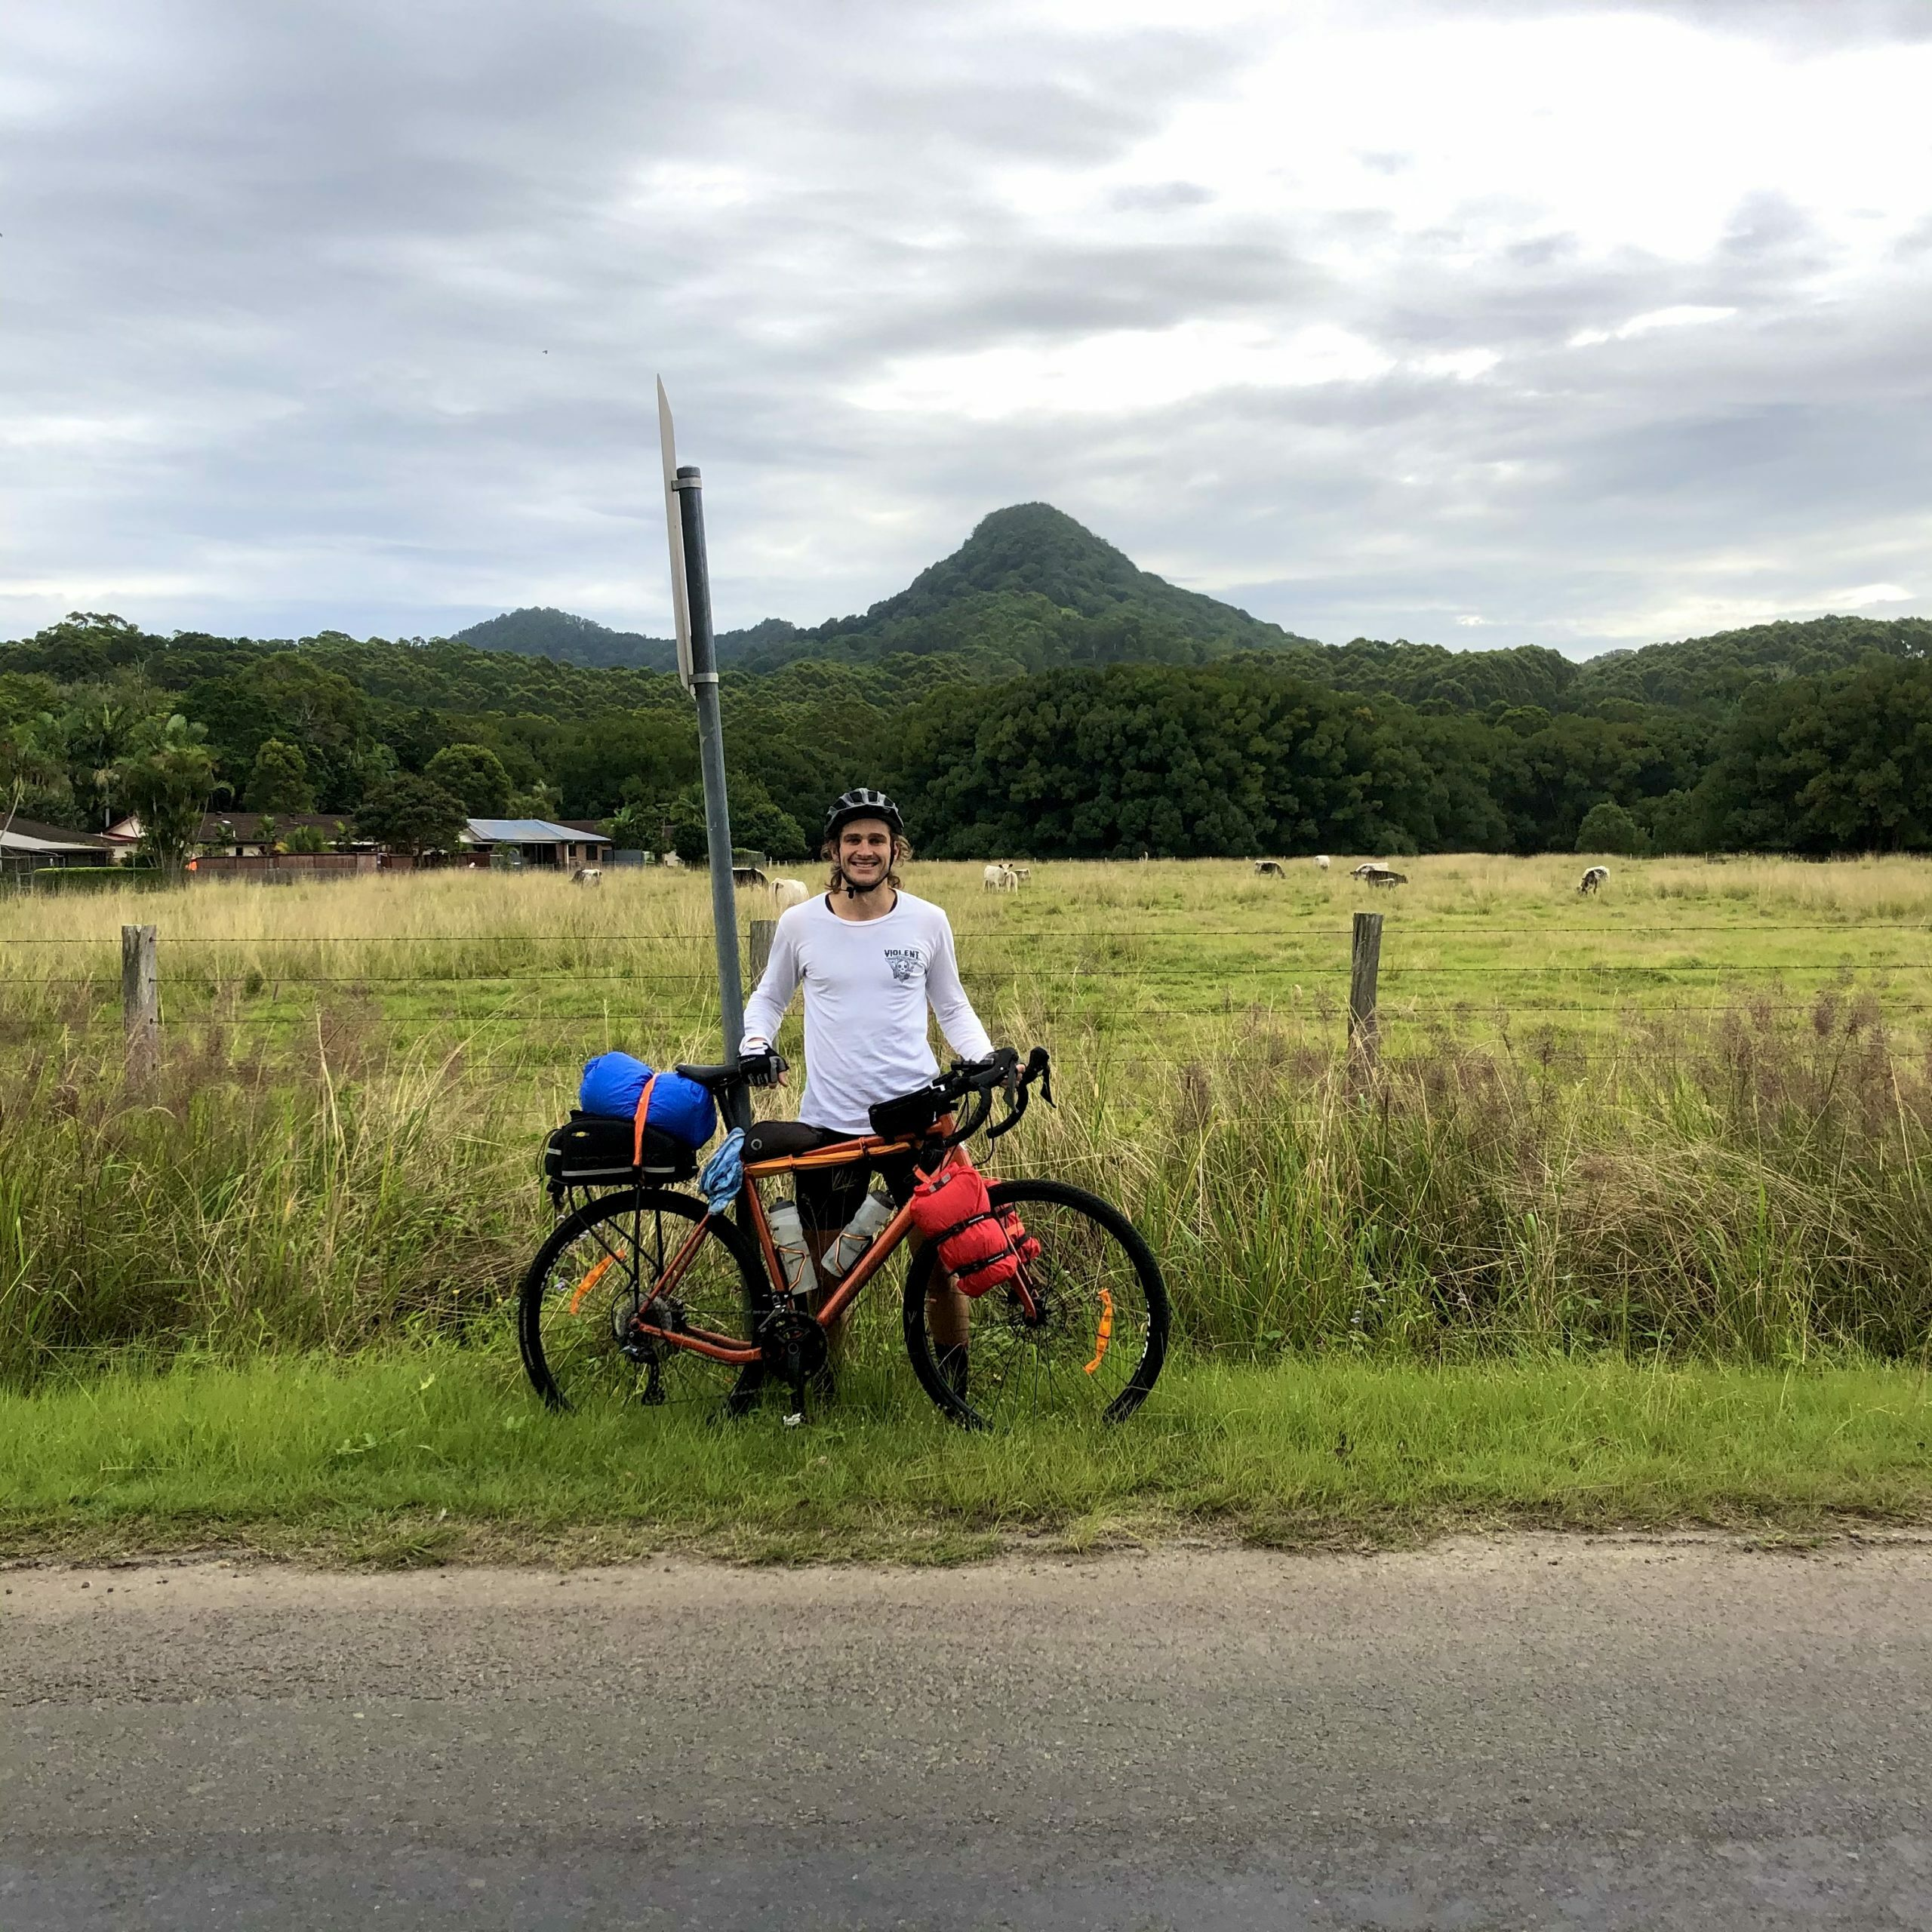 Bikepacking to Mullumbimby, Mount Chincogan in the background